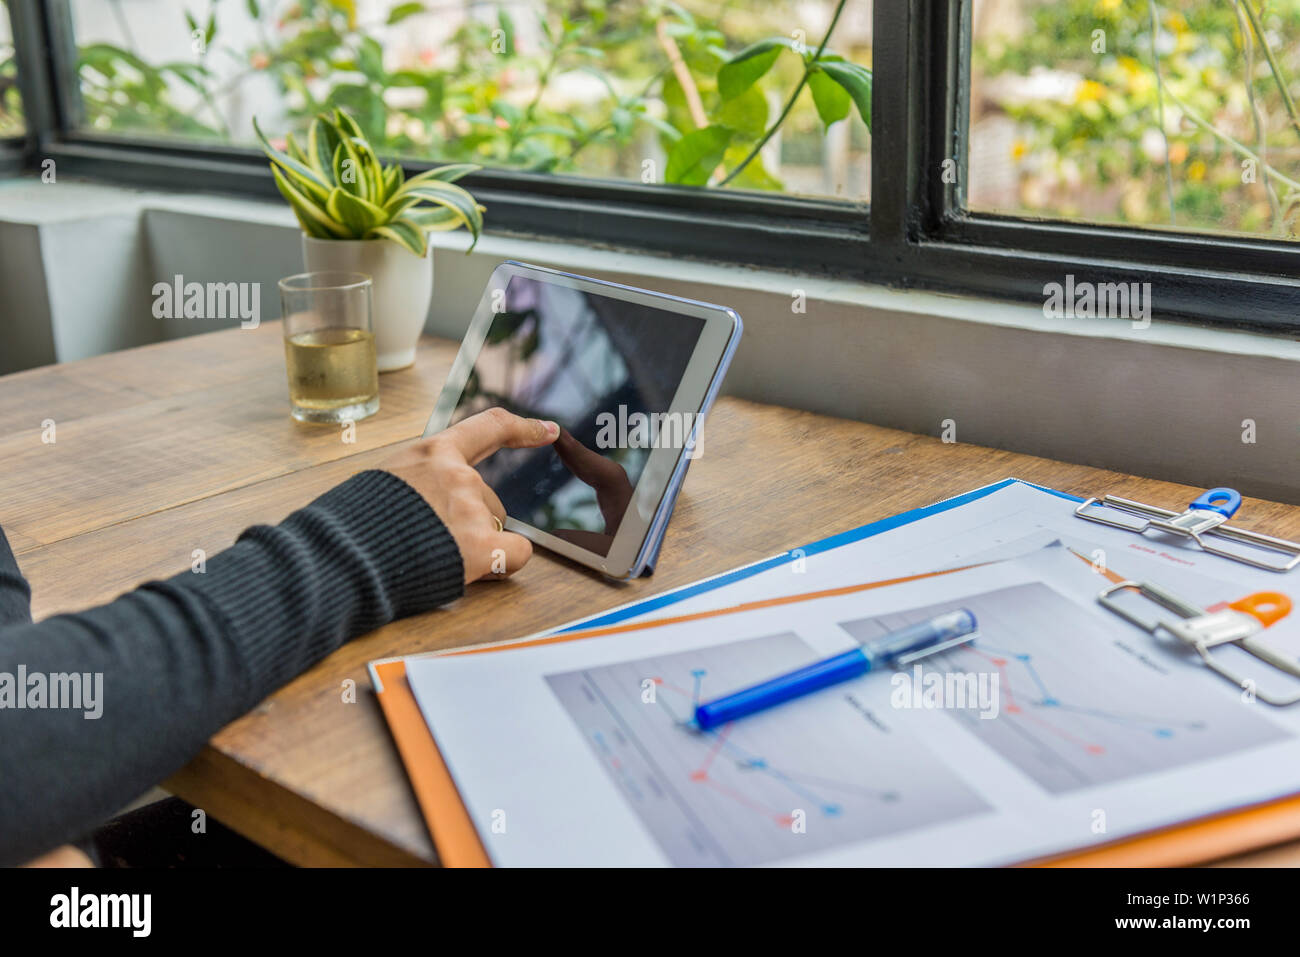 Female hand tapping tablet screen at workplace next to window - Stock Image